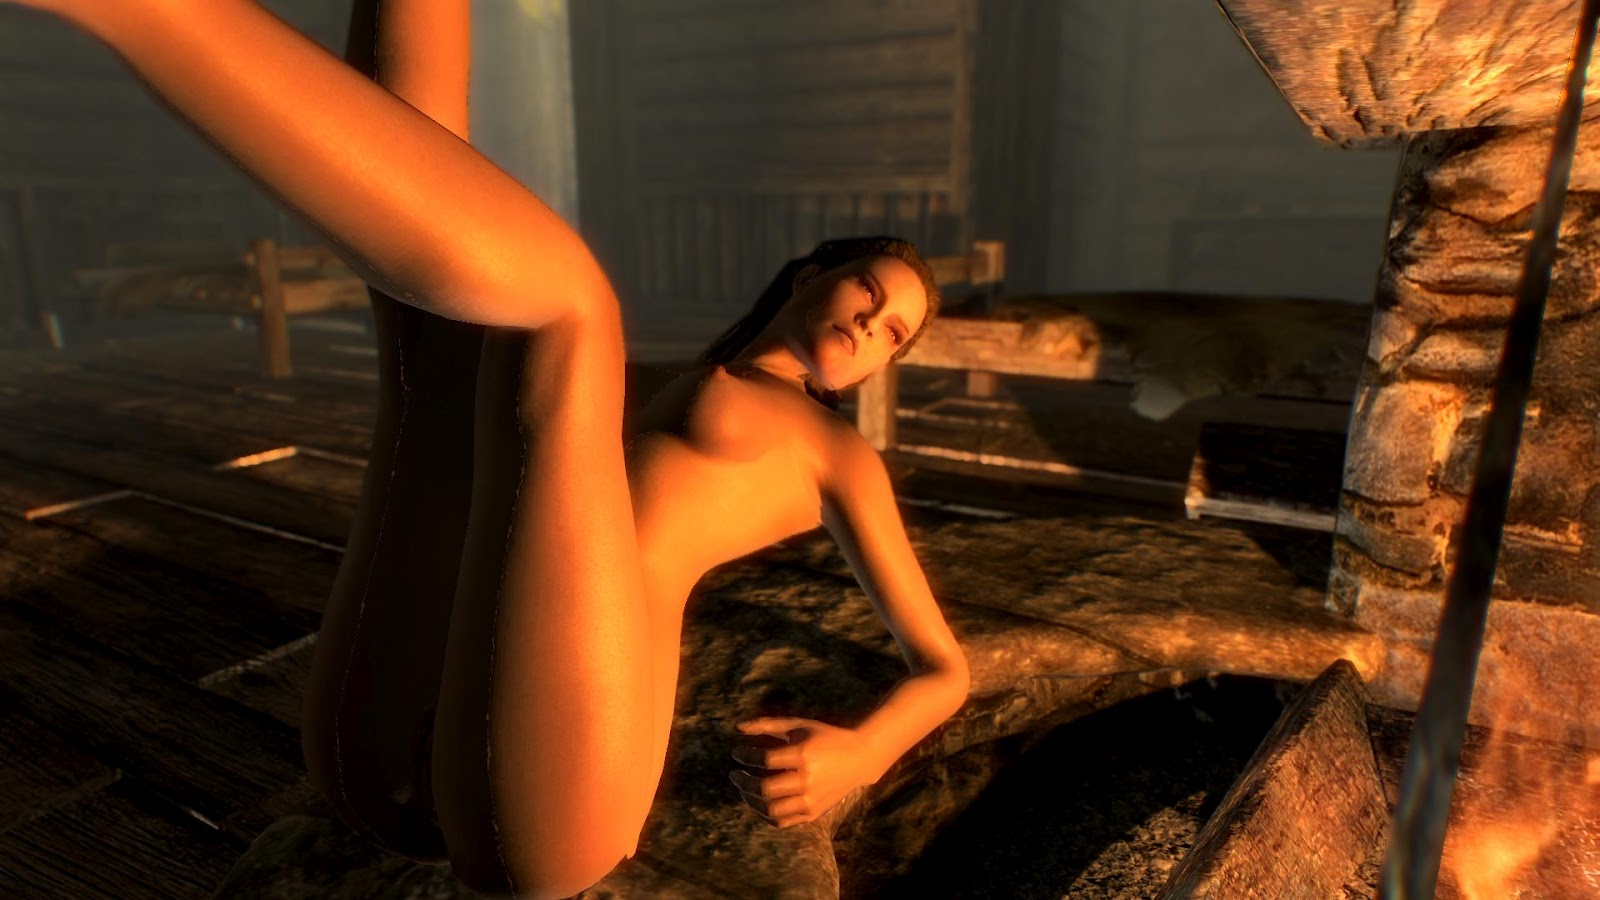 Nude women skyrim exposed galleries